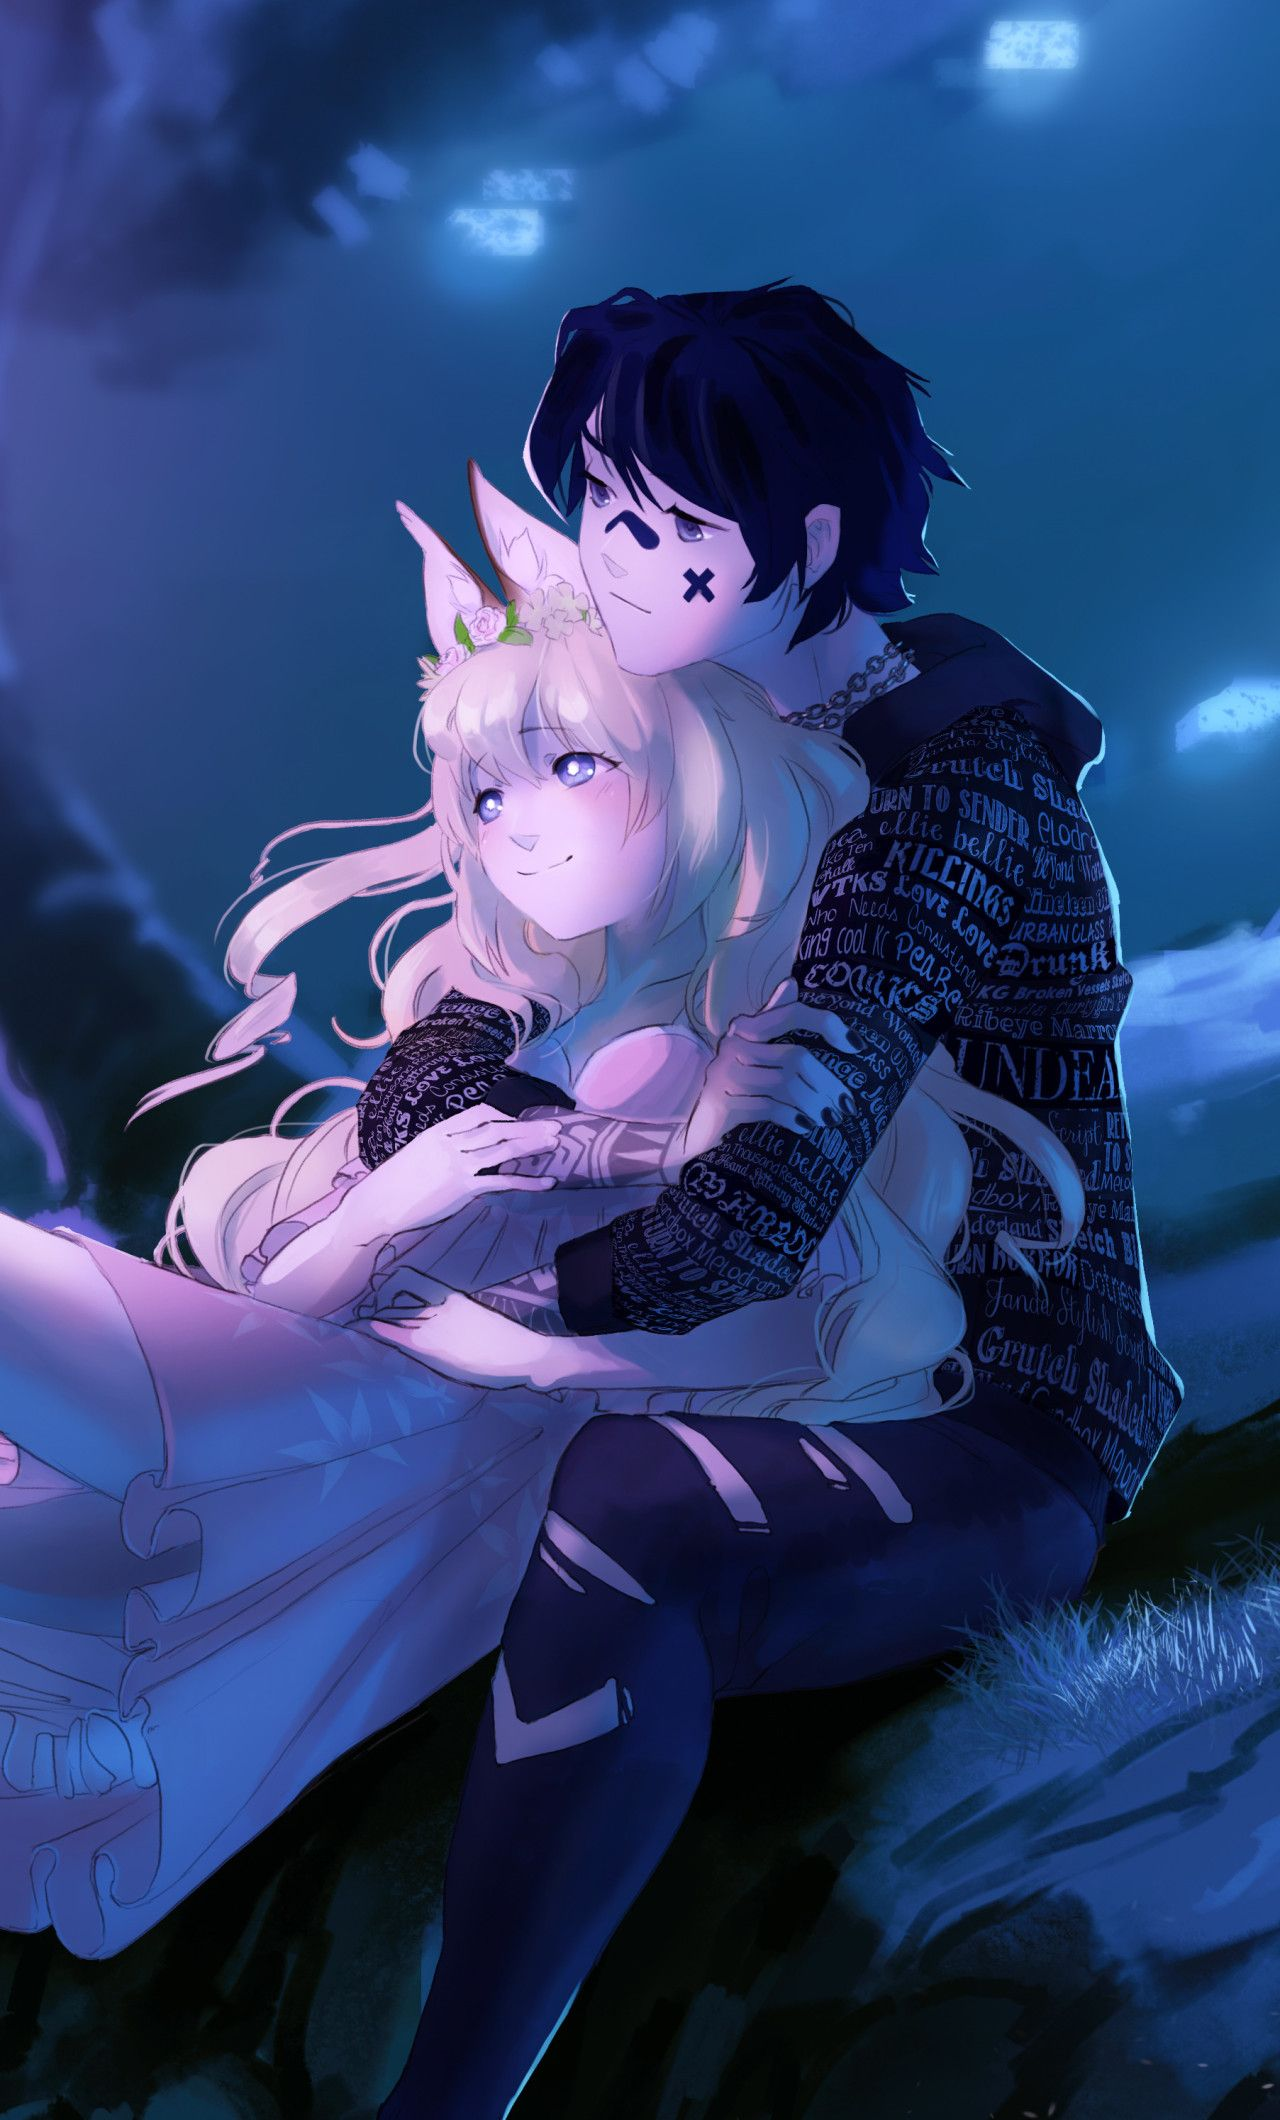 Anime Couple Wallpaper 4k 1280x2120 Embraced And Endeared Anime Couple 4k Iphone 6 Hd Anime Couple Wallpaper In 2021 Hd Anime Wallpapers Anime Anime Wallpaper Iphone